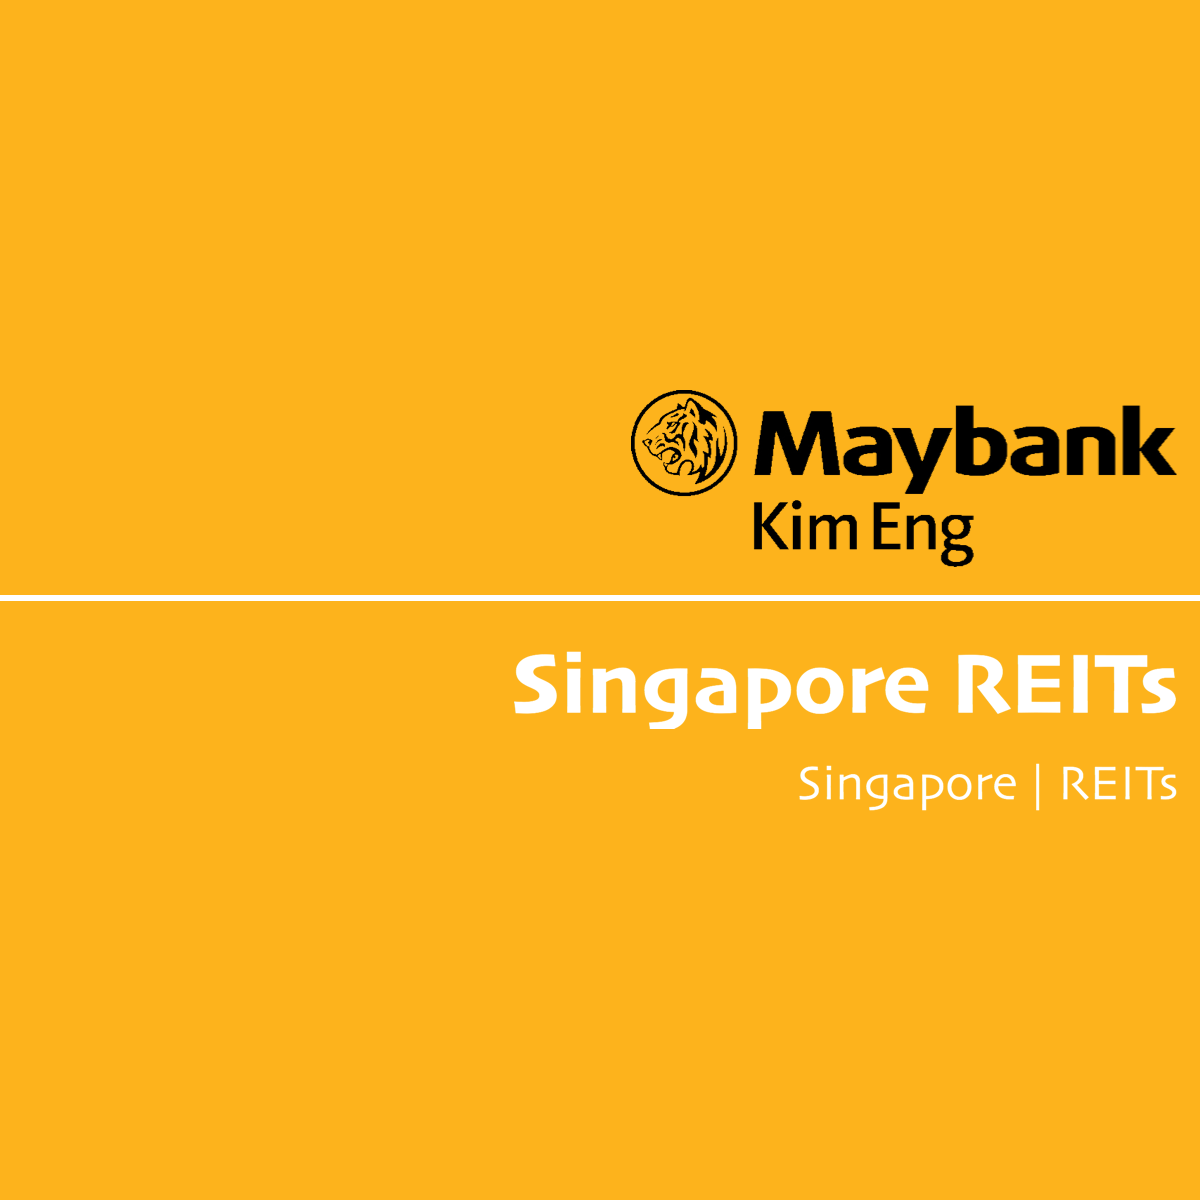 Singapore REITs - Maybank Kim Eng 2017-06-30: Supply Restraint